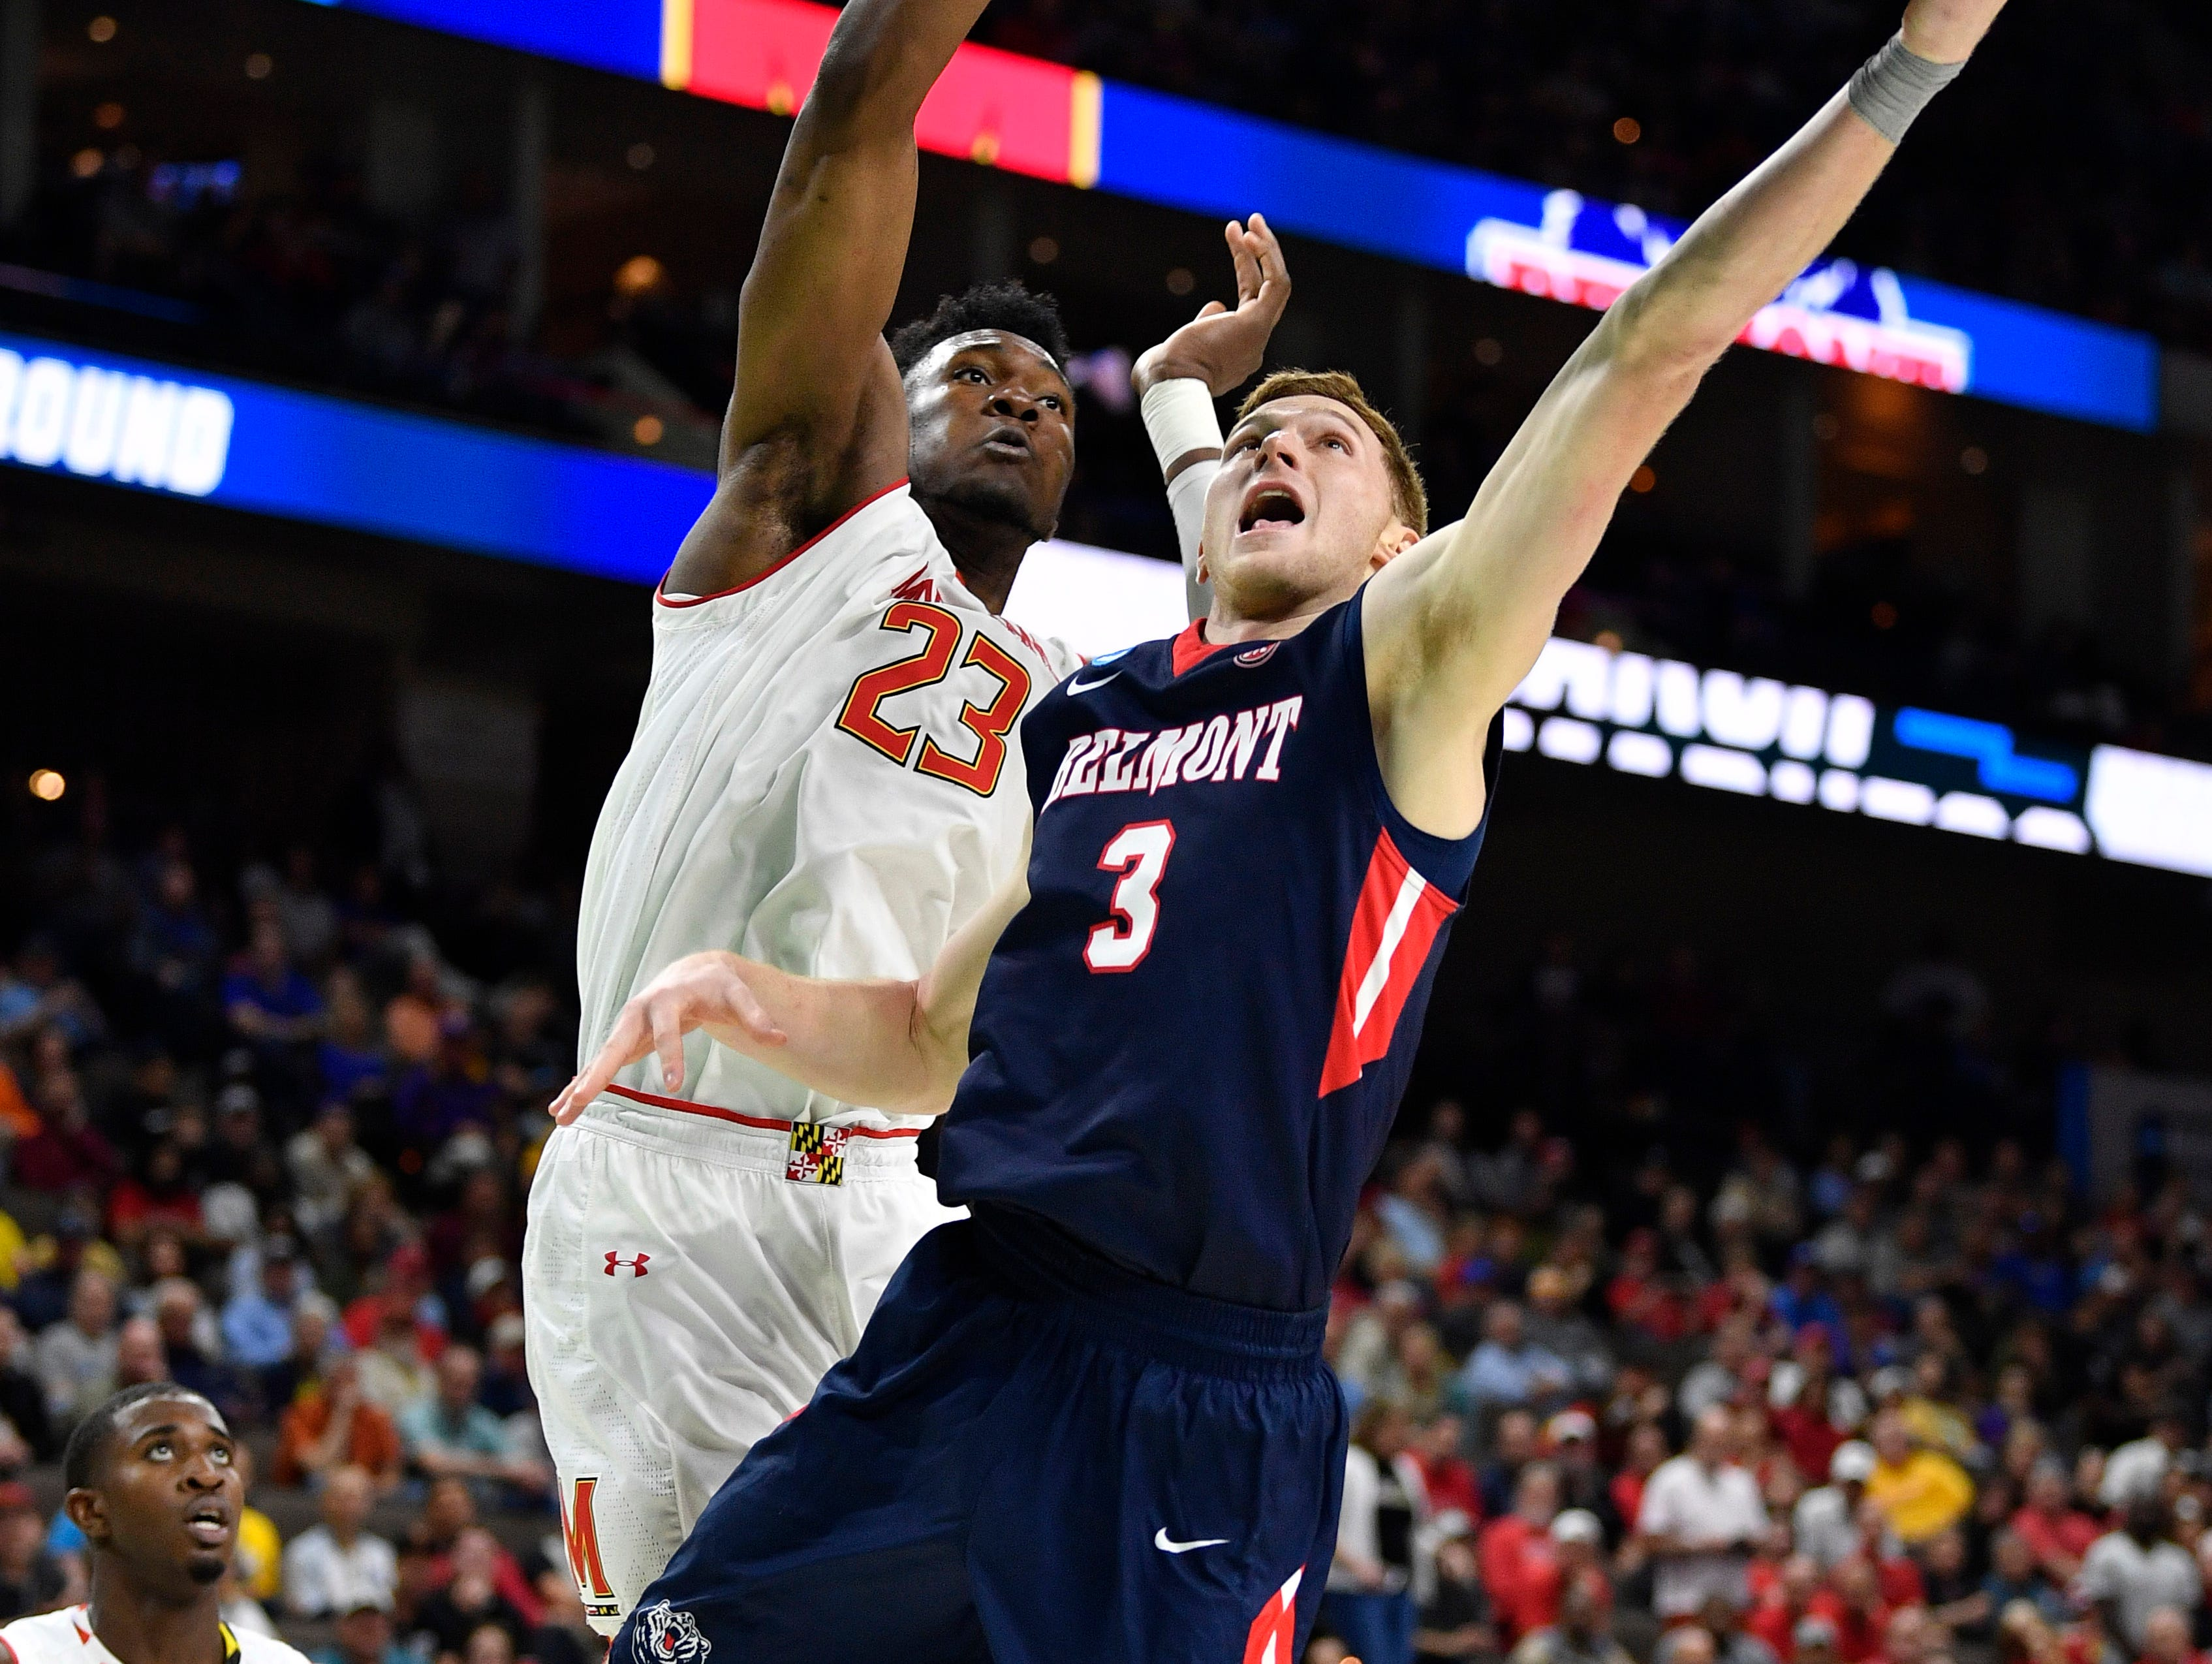 Belmont guard/forward Dylan Windler (3) scores defended by Maryland forward Bruno Fernando (23) during the second half of the first-round NCAA college basketball tournament game at VyStar Veterans Memorial Arena in Jacksonville, Fla., Thursday, March 21, 2019.